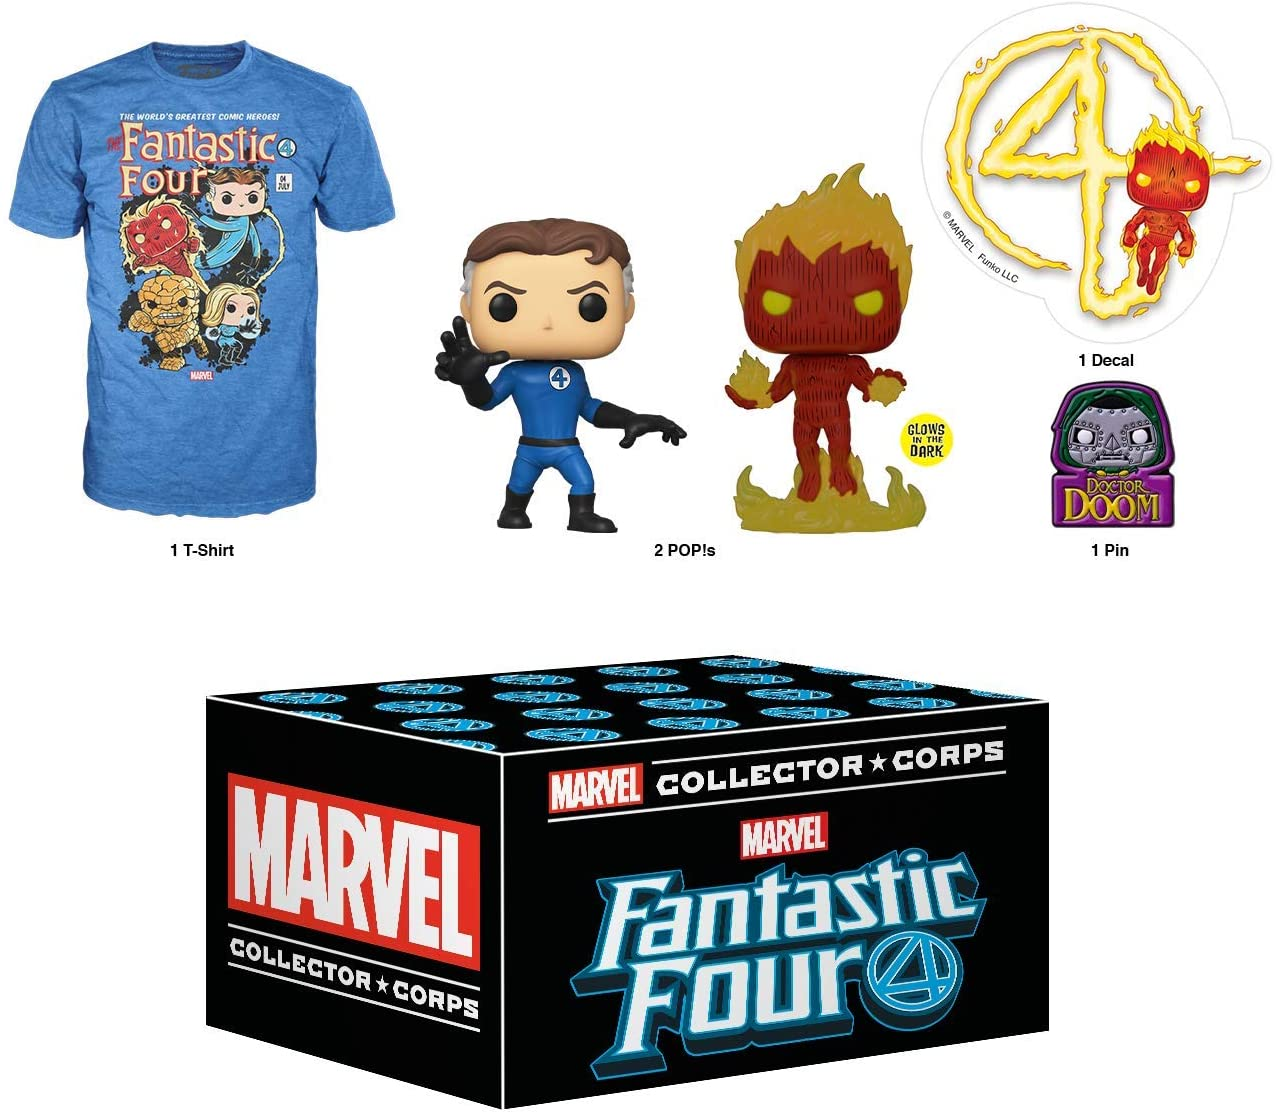 Marvel subscription boxes